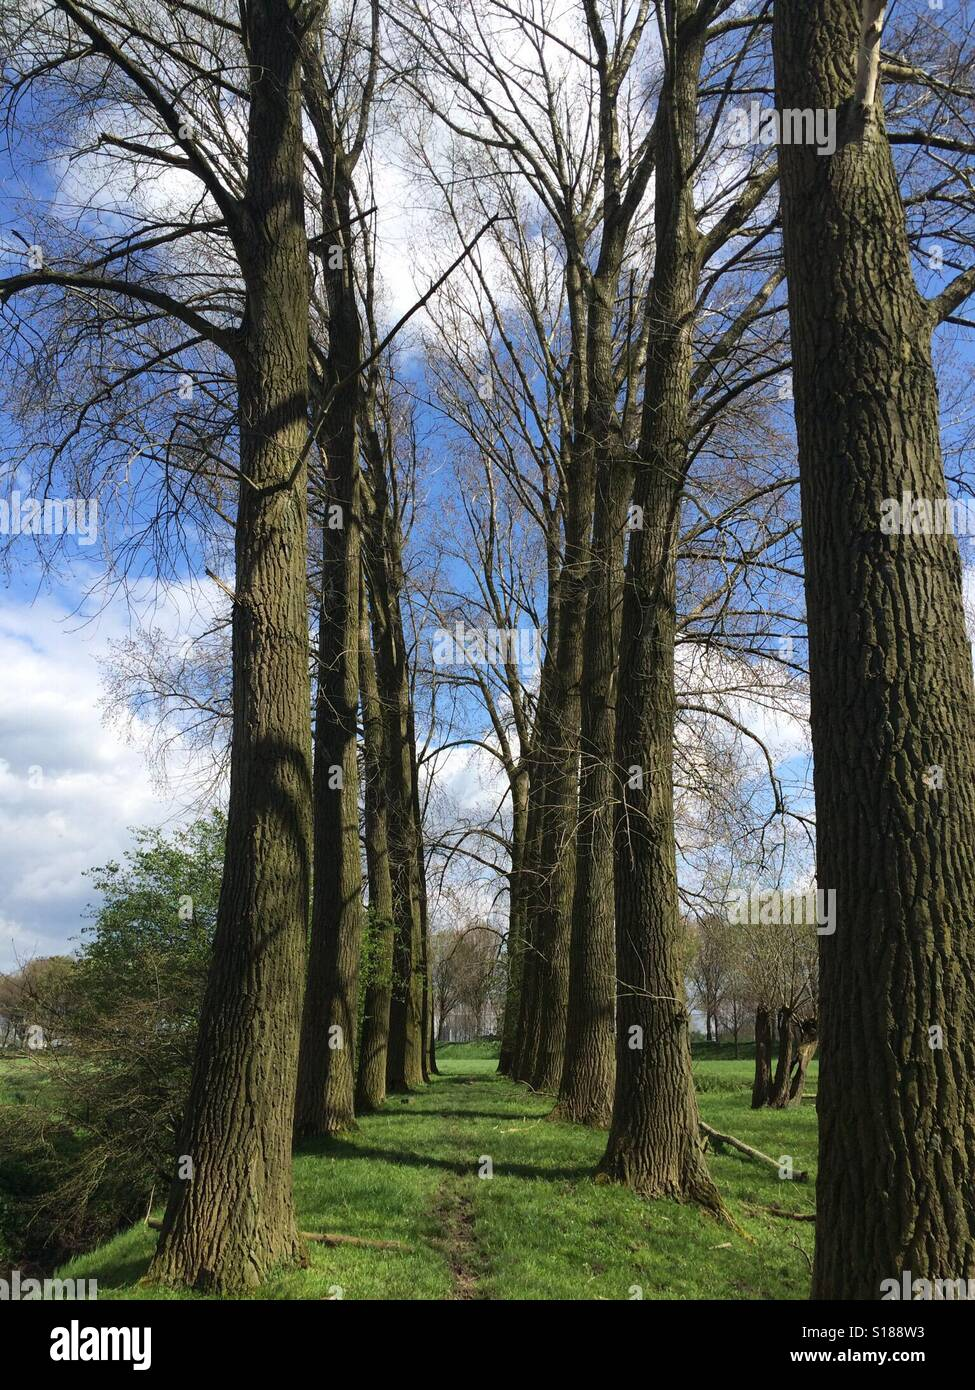 Tall trees in a blue sky with white clouds and green grass Stock Photo